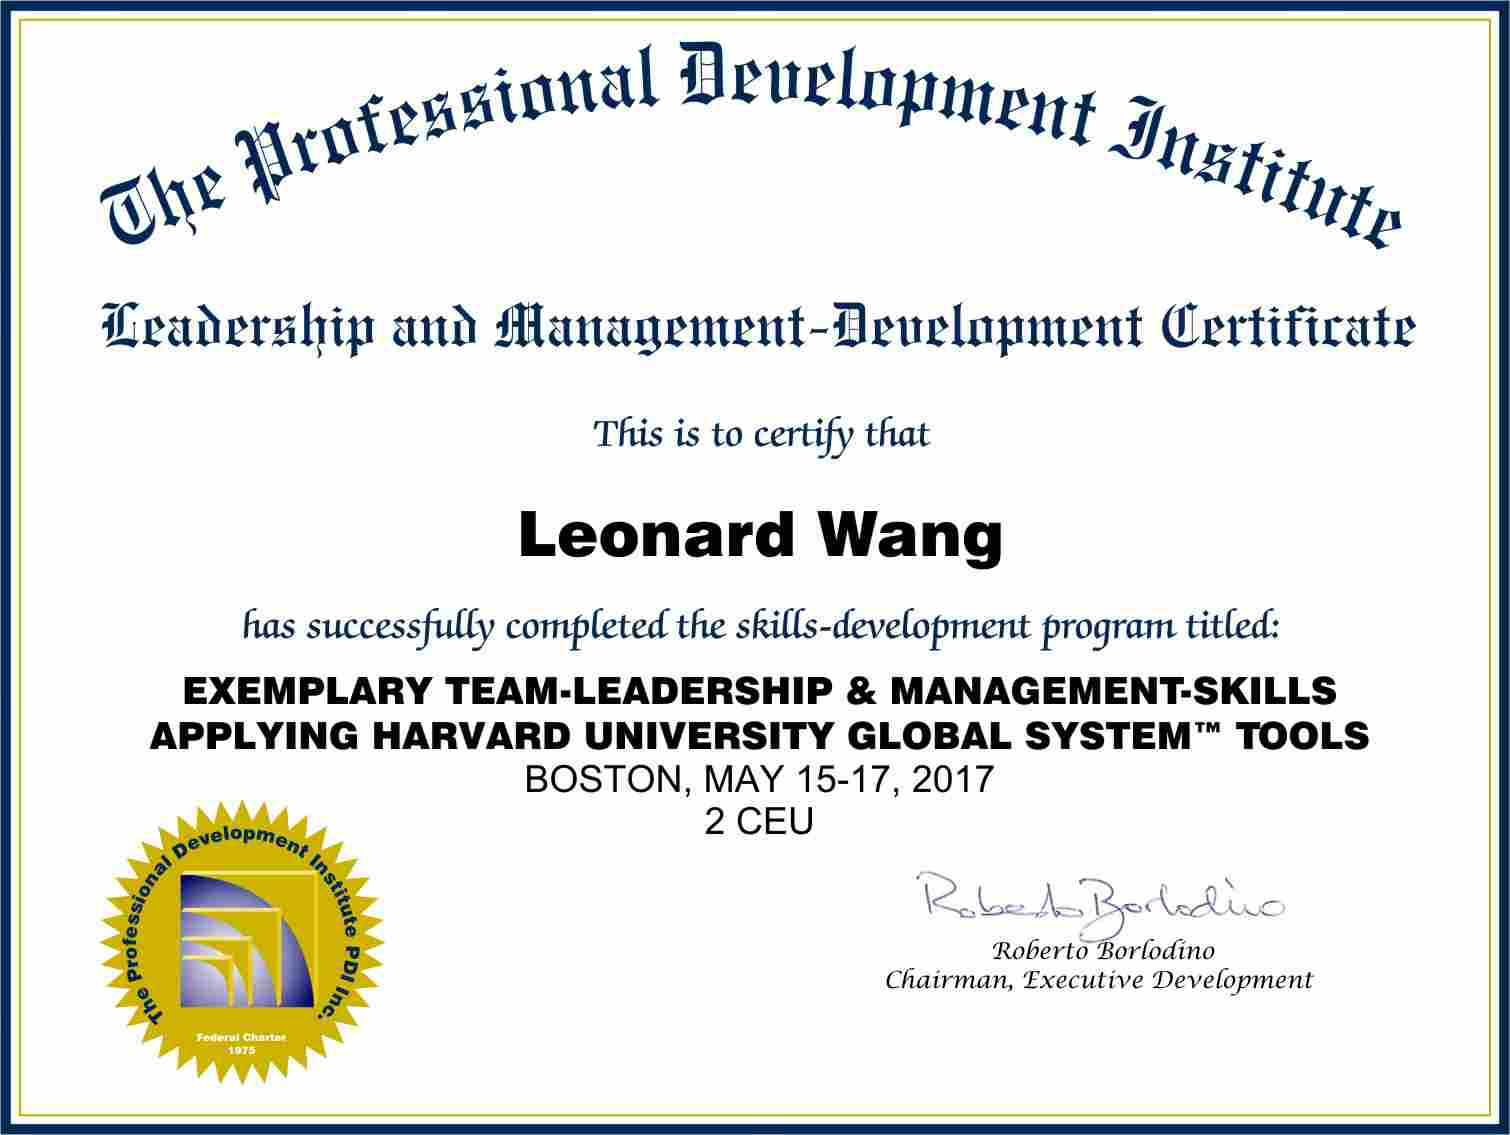 new manager and team leader workshop workshop certificate for exemplary team leadership management skills mastering the competencies and